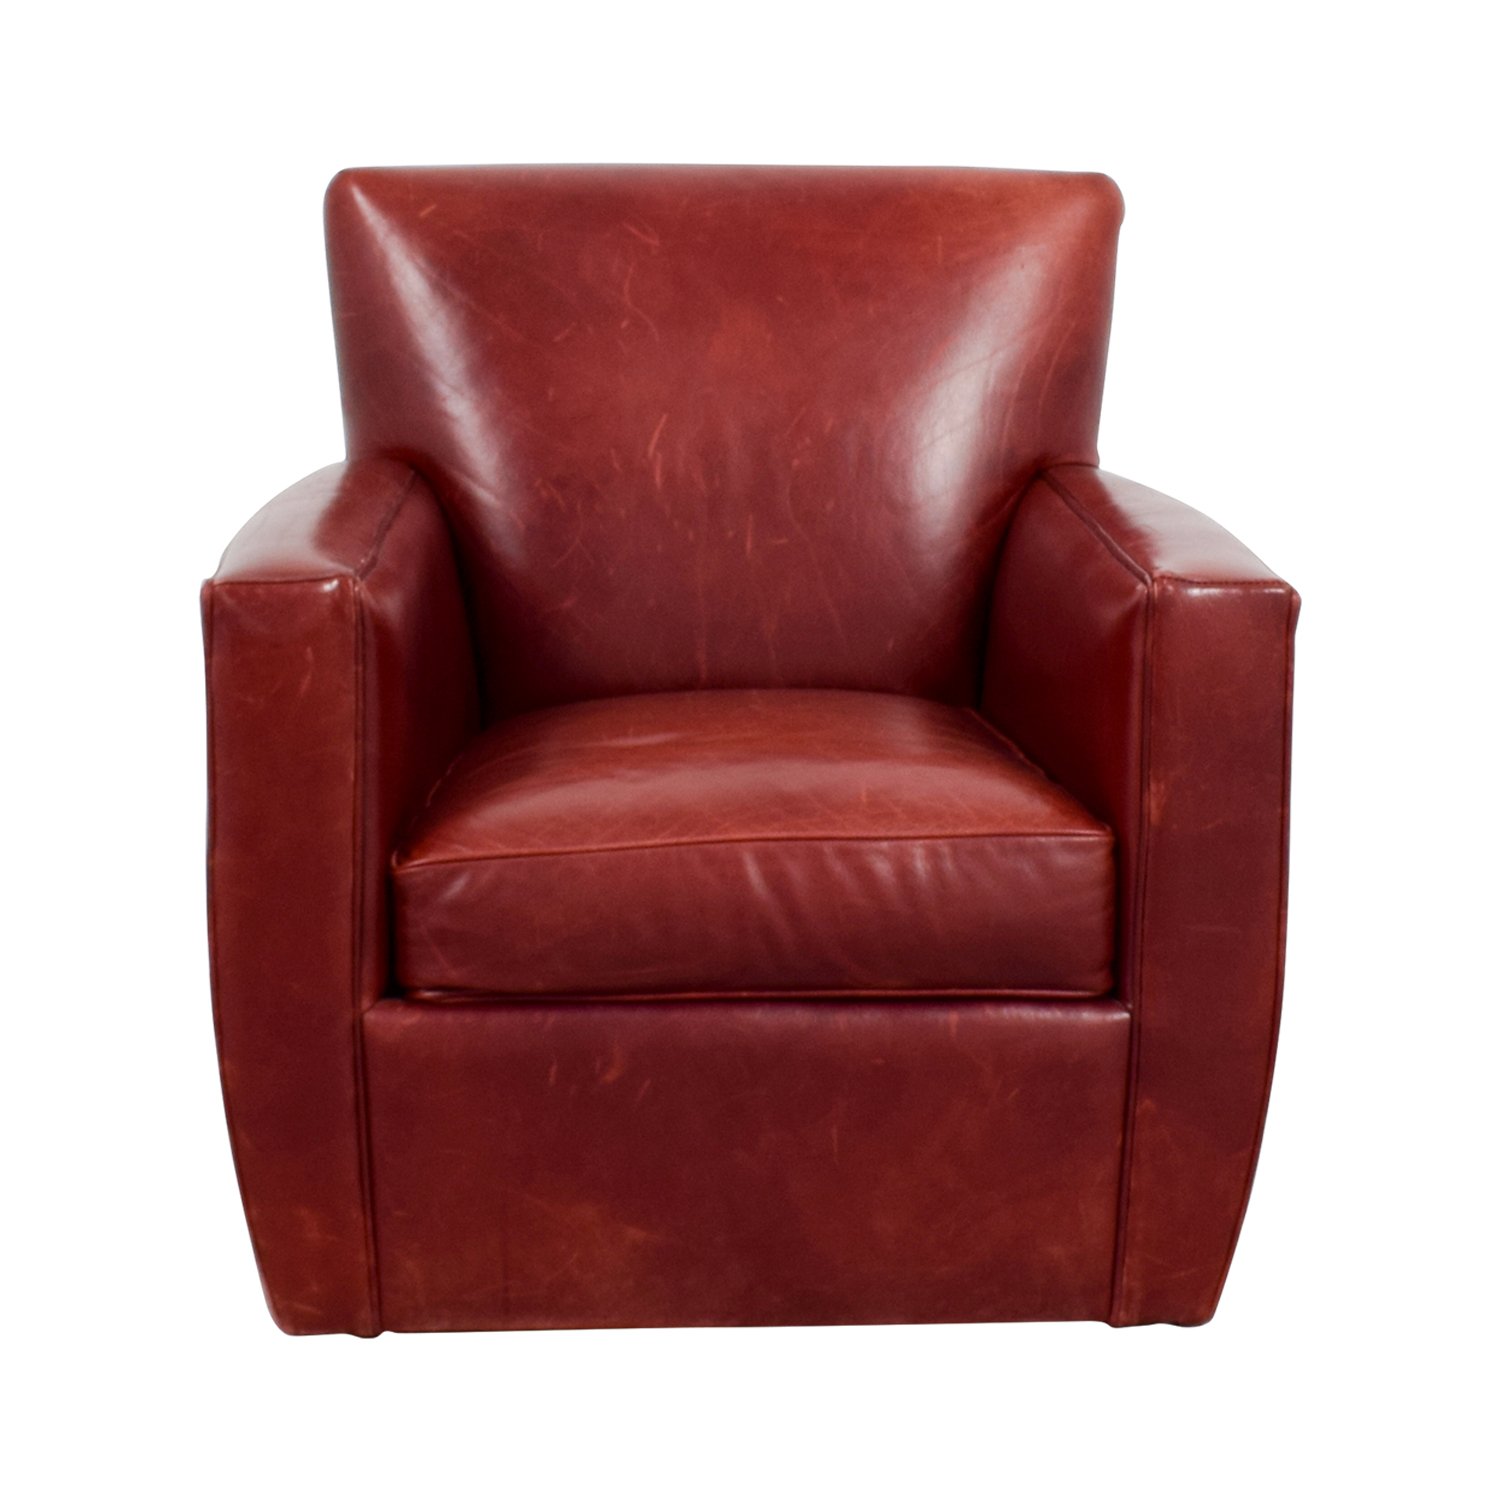 Red Leather Swivel Chair 79 Off Crate Barrel Crate Barrel Leather Swivel Chair Chairs